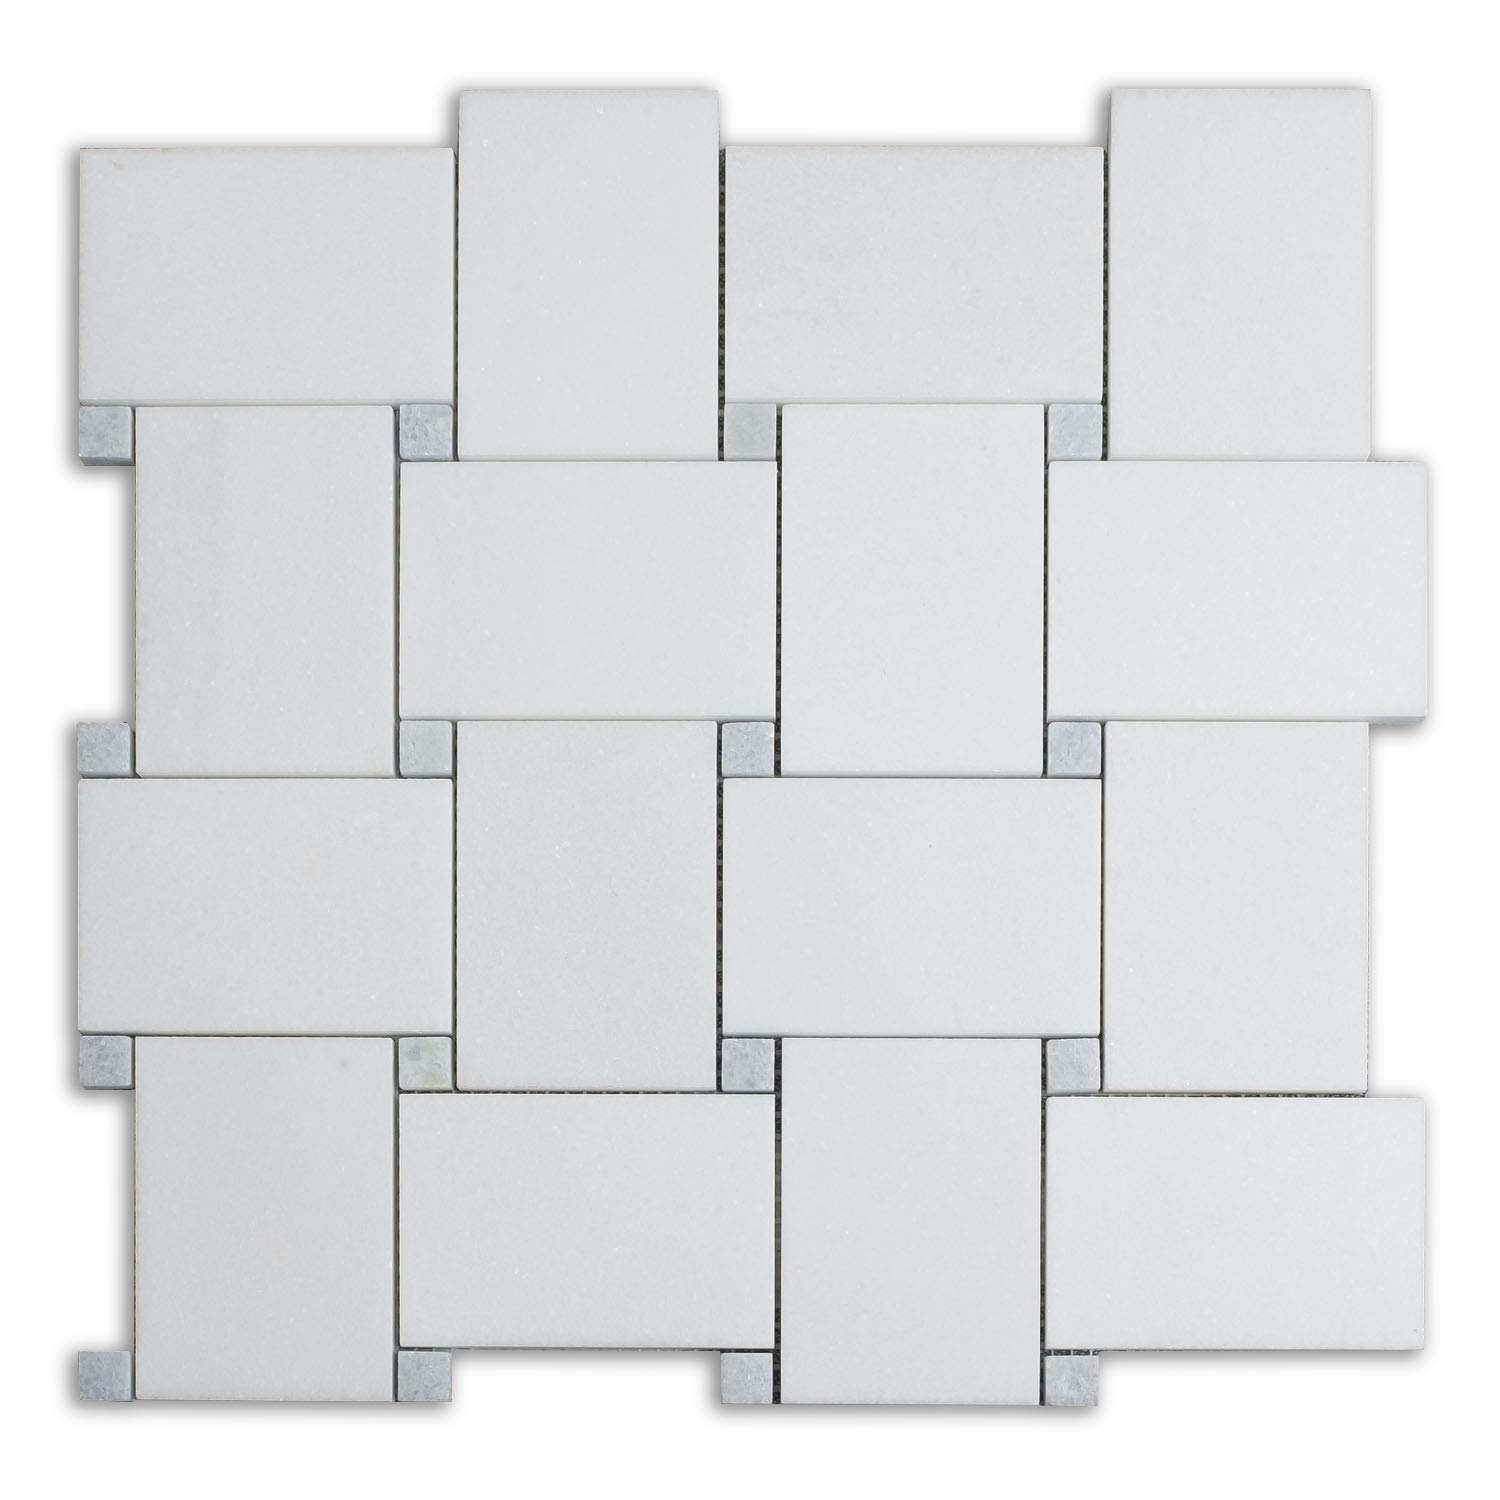 Pollished Bold Basketweave Marble Mosaic Tiles with Greek Thassos White Marble & Blue Celest Marble|Bathroom & Kitchen Backsplash Wall |5-Sheet Box